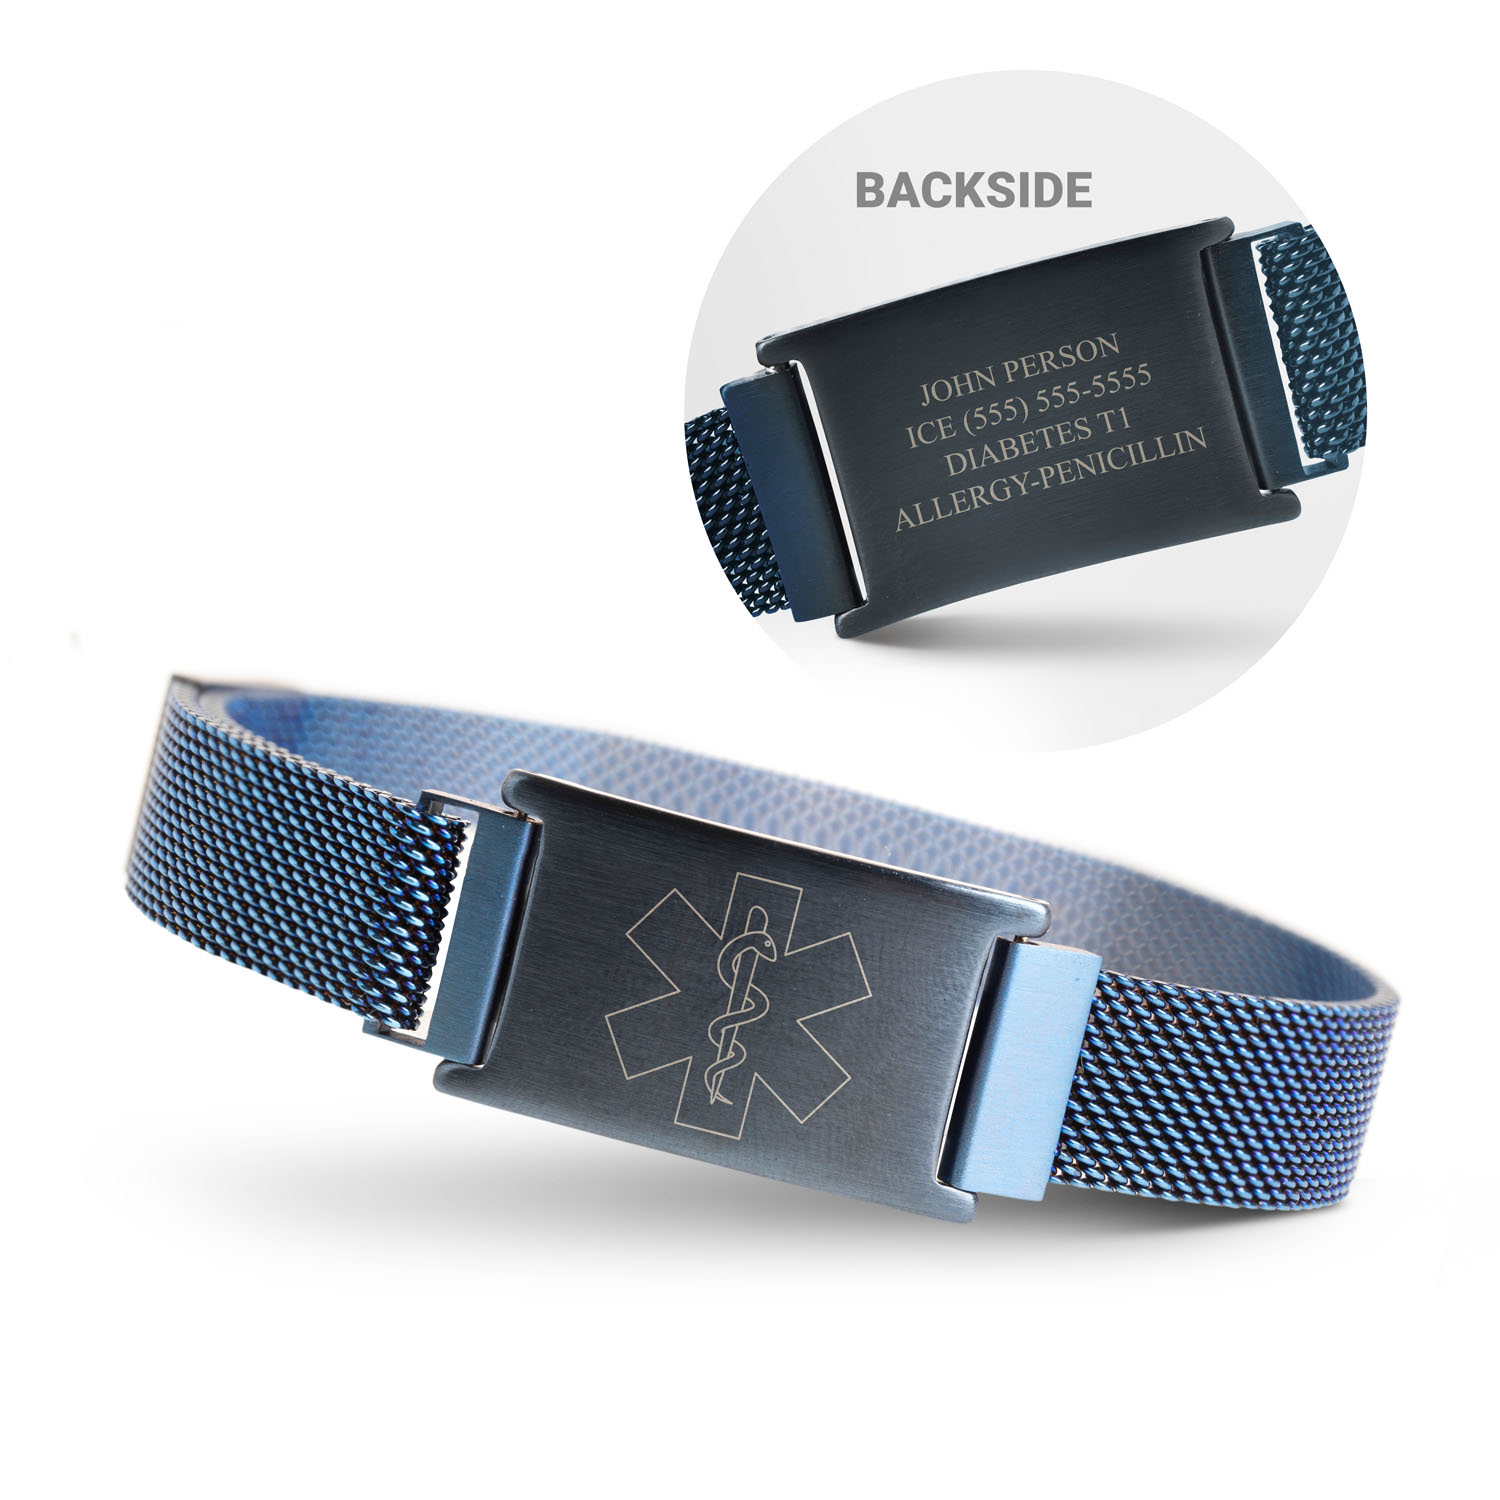 Running Adjustable Stainless Steel Magnetic Bracelet - Medic Alert with Information - Personalization Image